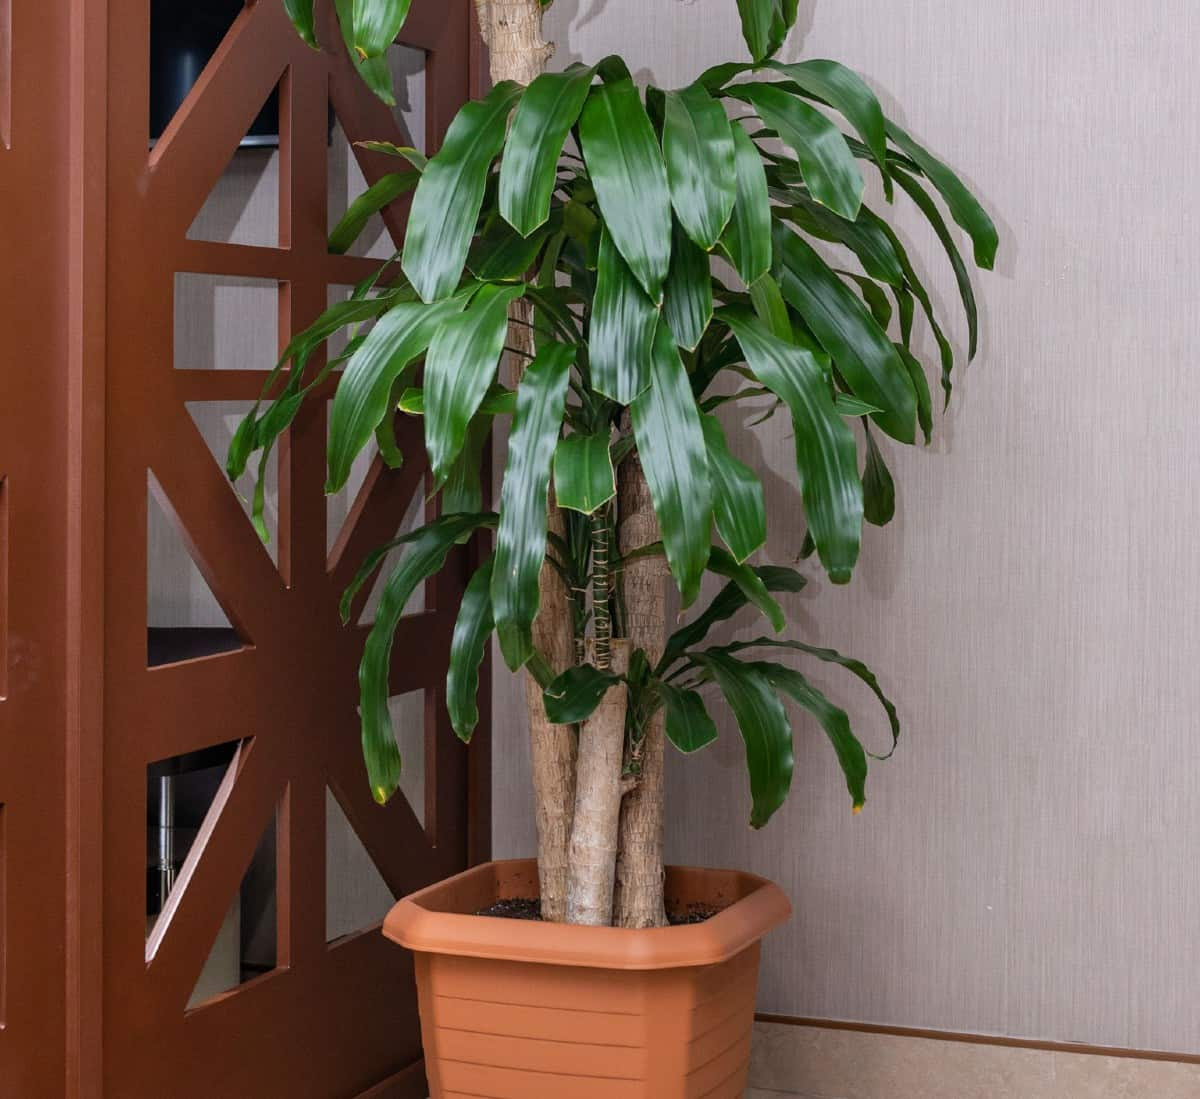 The money tree is also called the Guiana chestnut.